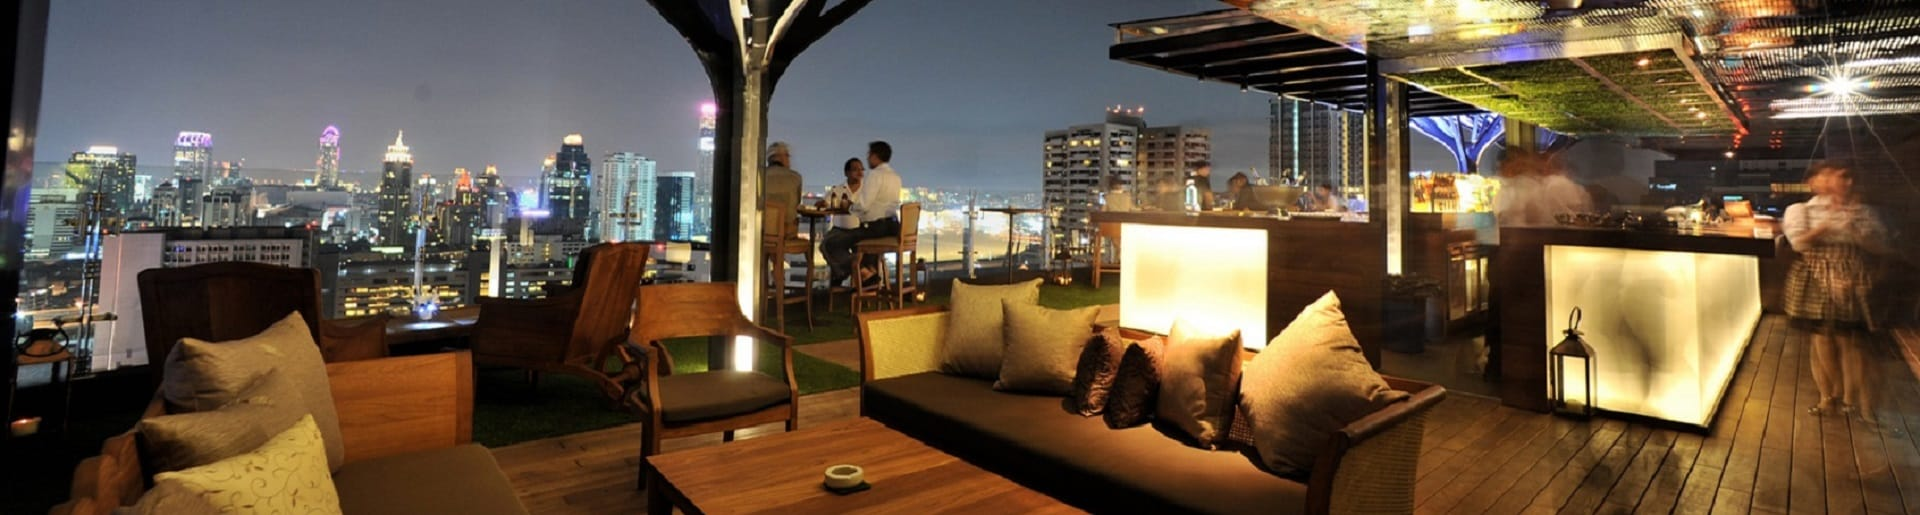 above-eleven-rooftop-bar-restaurant-interior-bangkok-architecture-sohohospitality